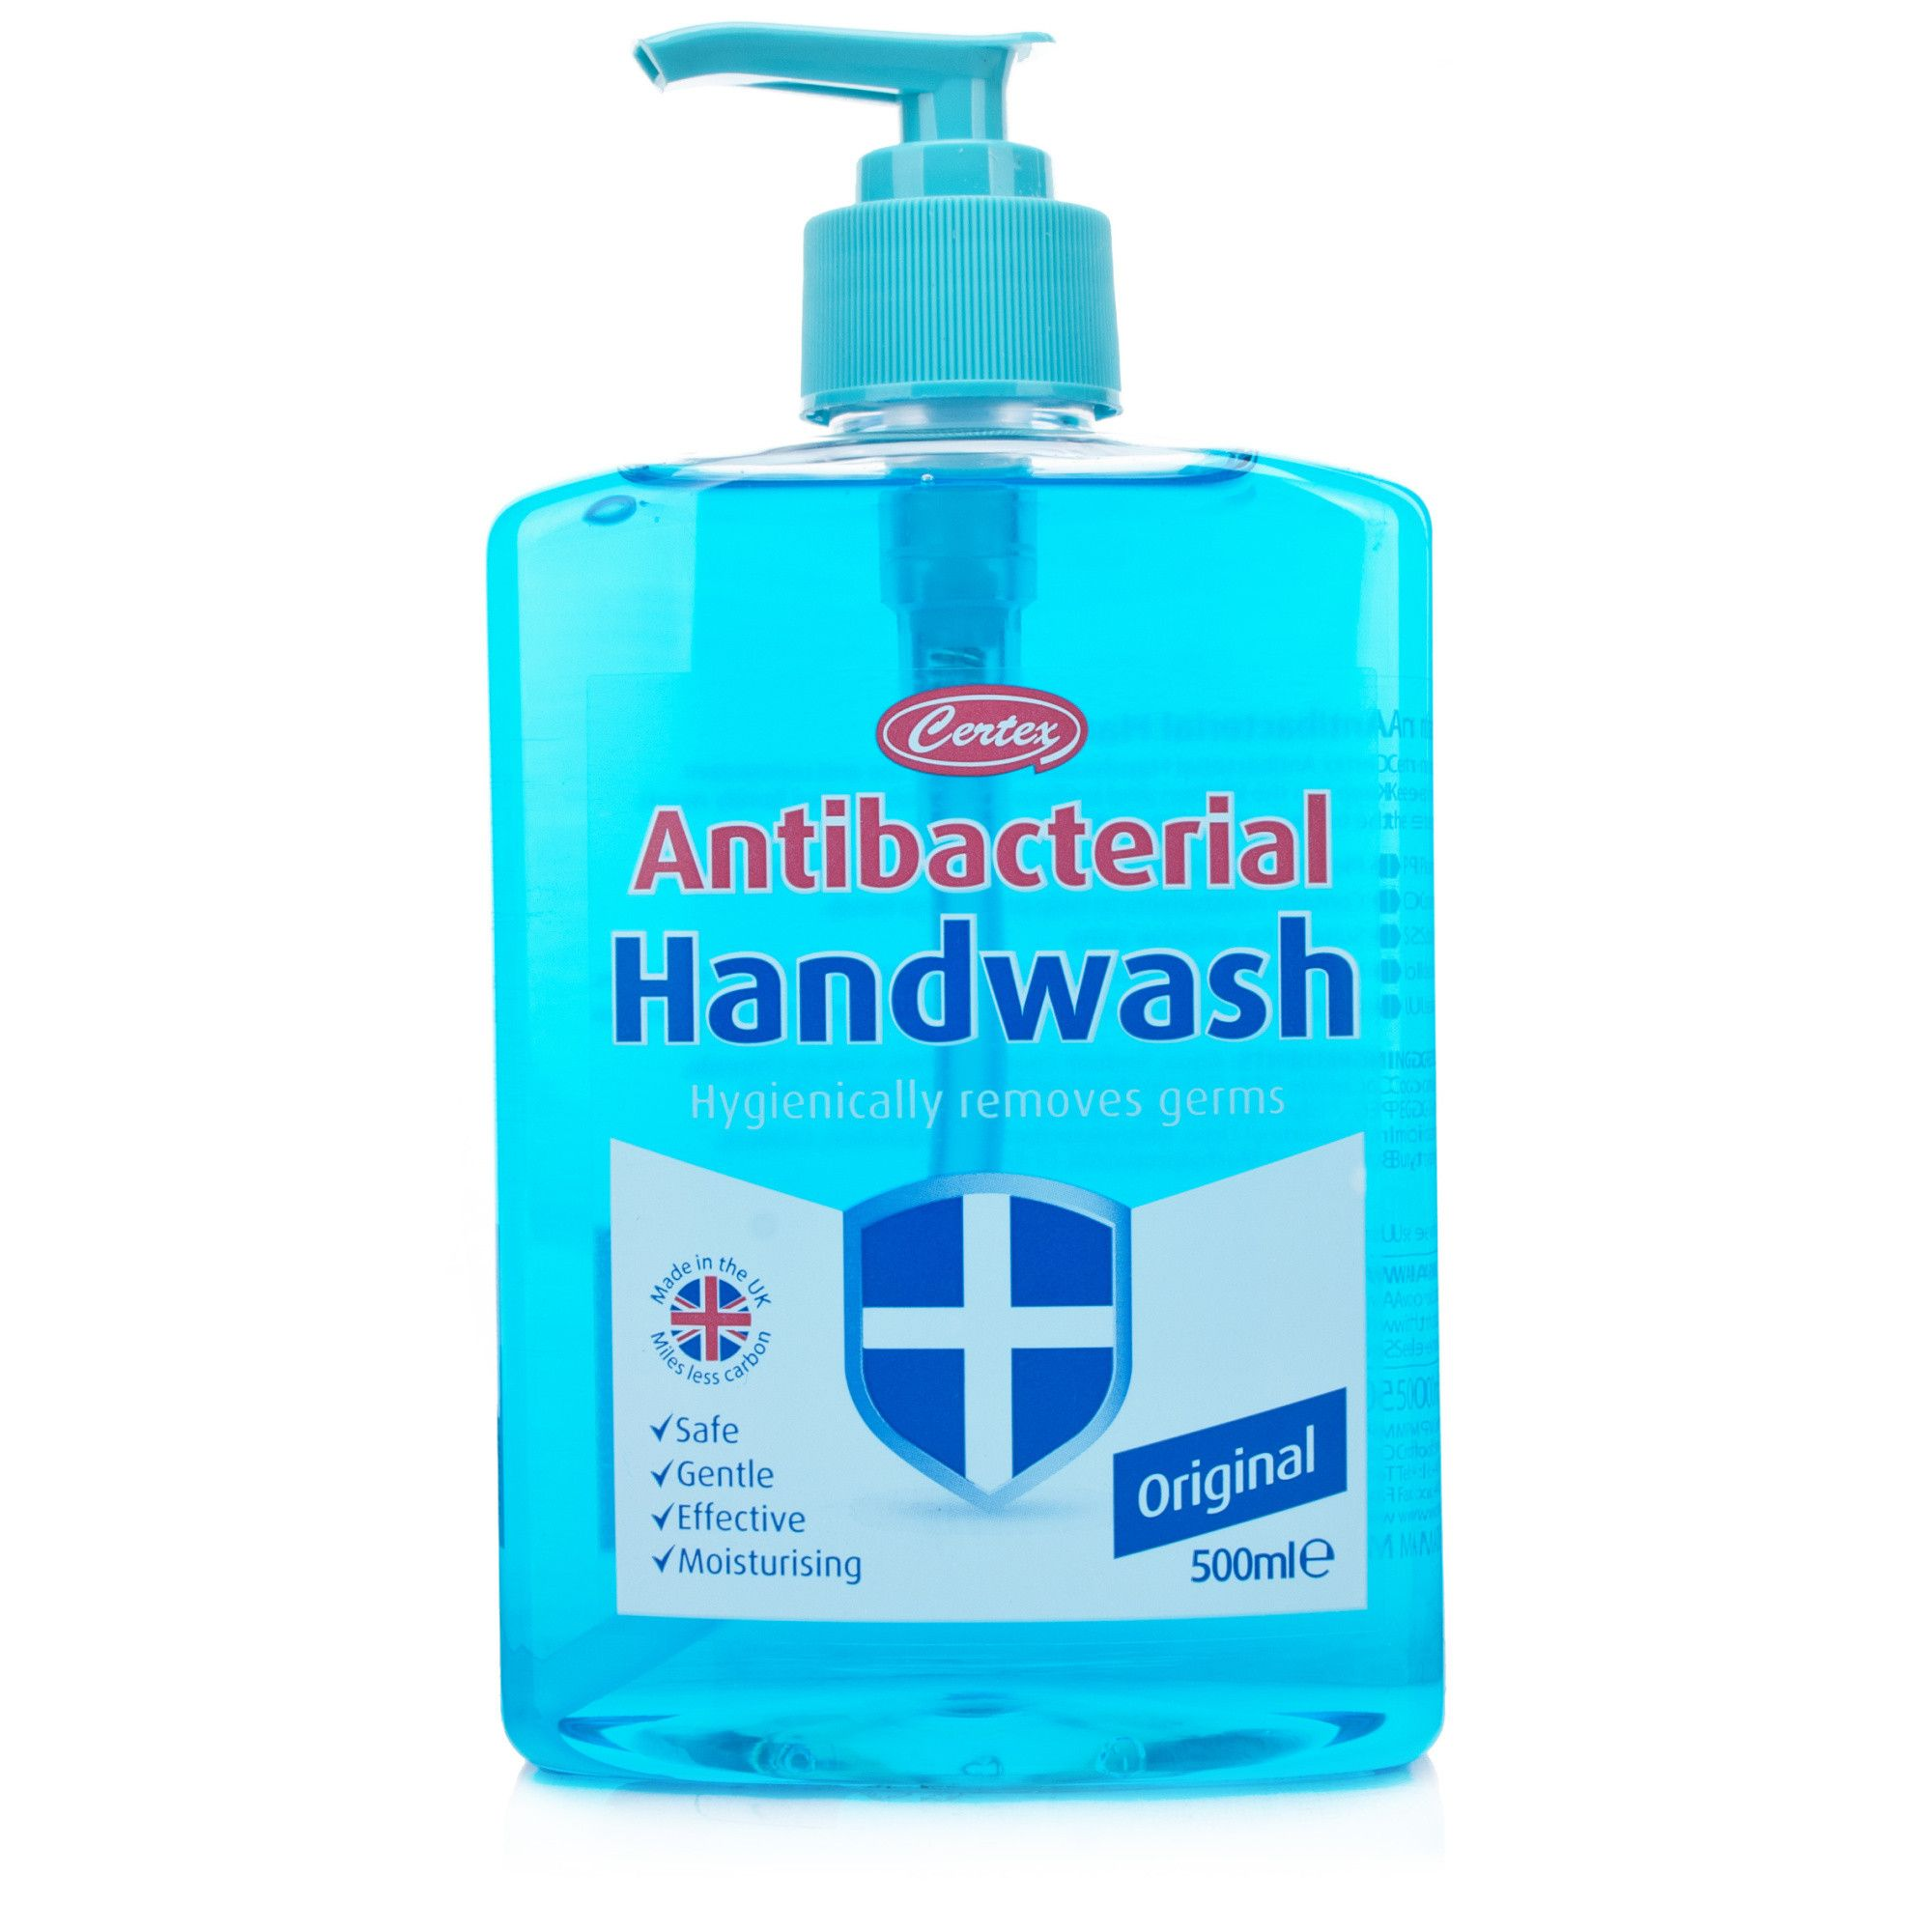 Certex Antibacterial Handwash Blue 12 Pack Clean Fragrance